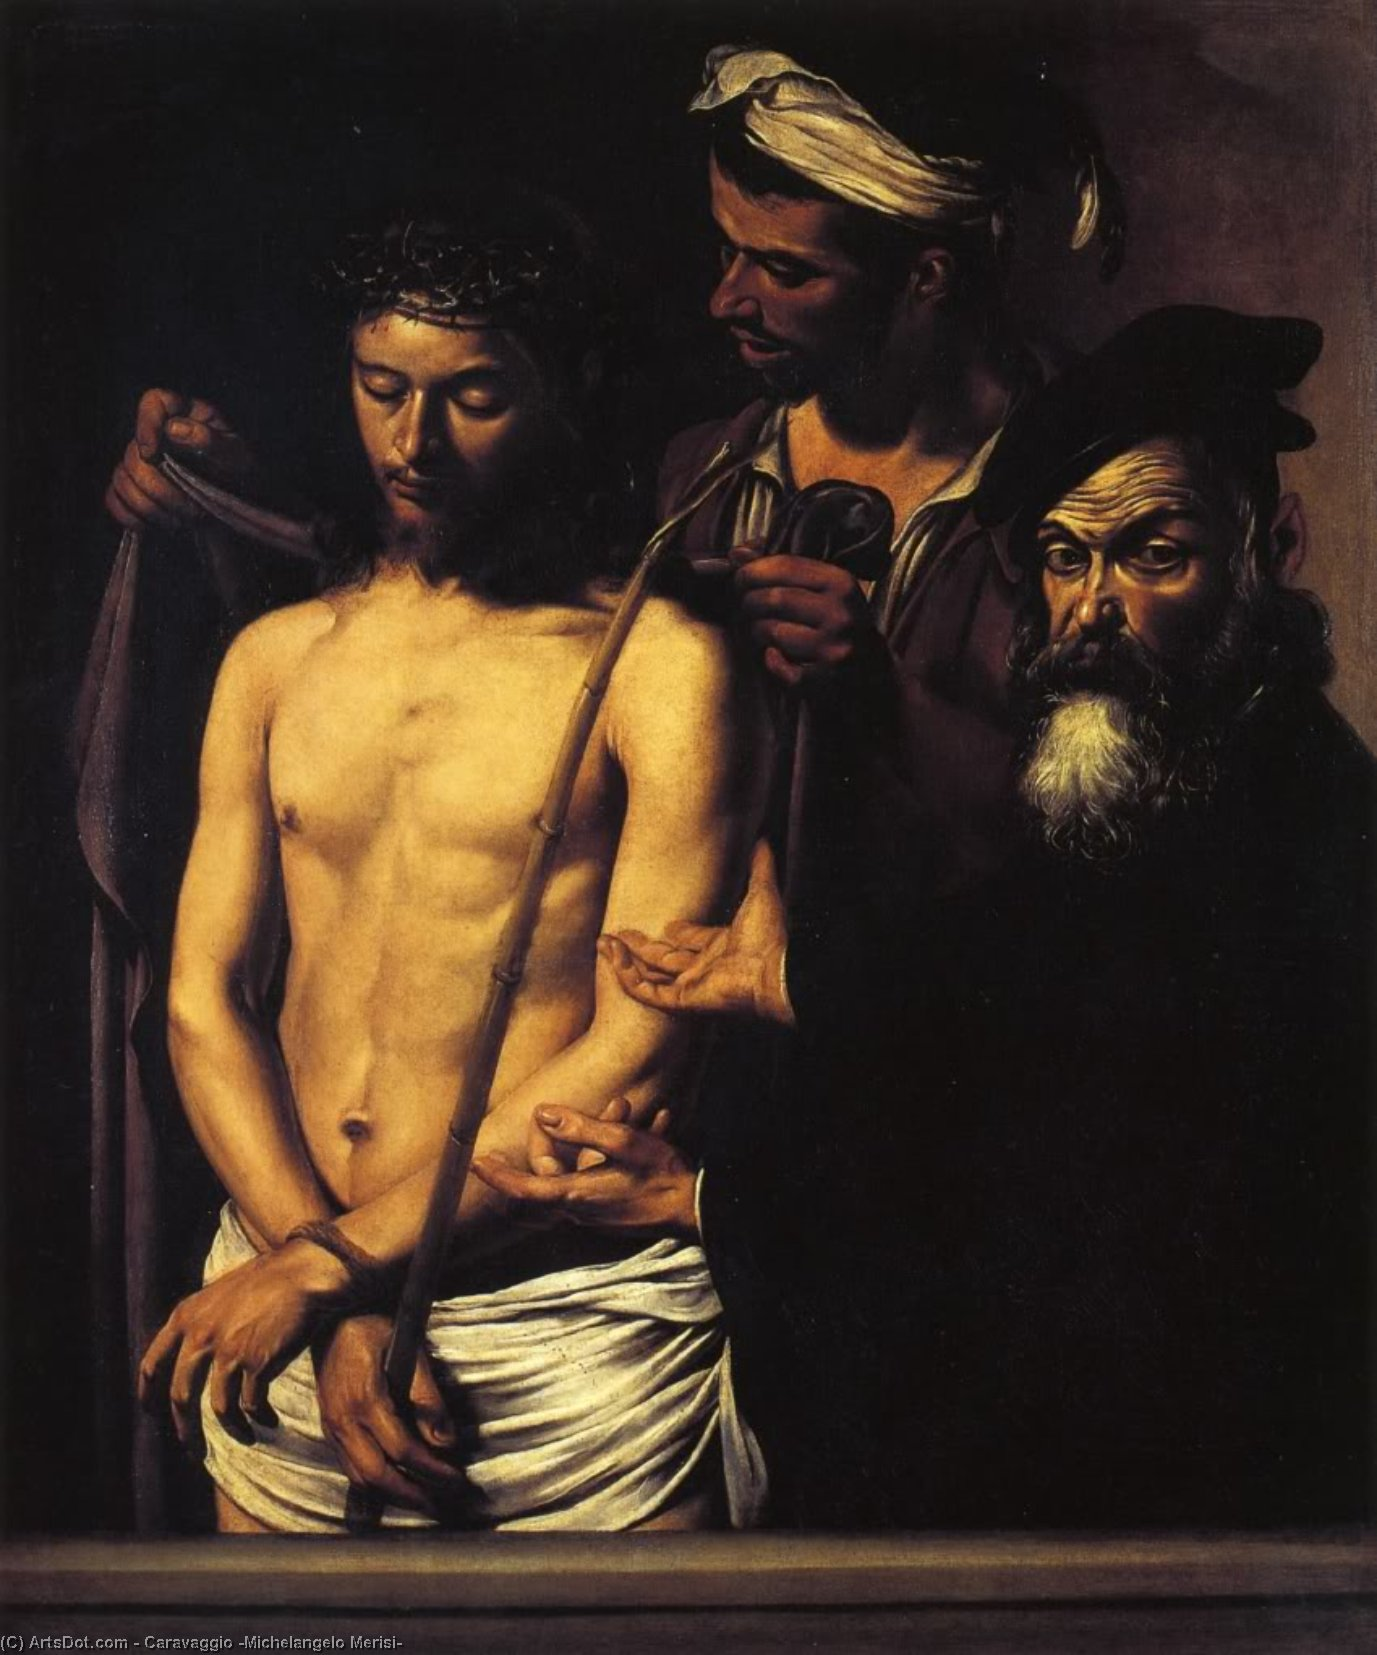 Wikioo.org - The Encyclopedia of Fine Arts - Painting, Artwork by Caravaggio (Michelangelo Merisi) - Ecce Homo